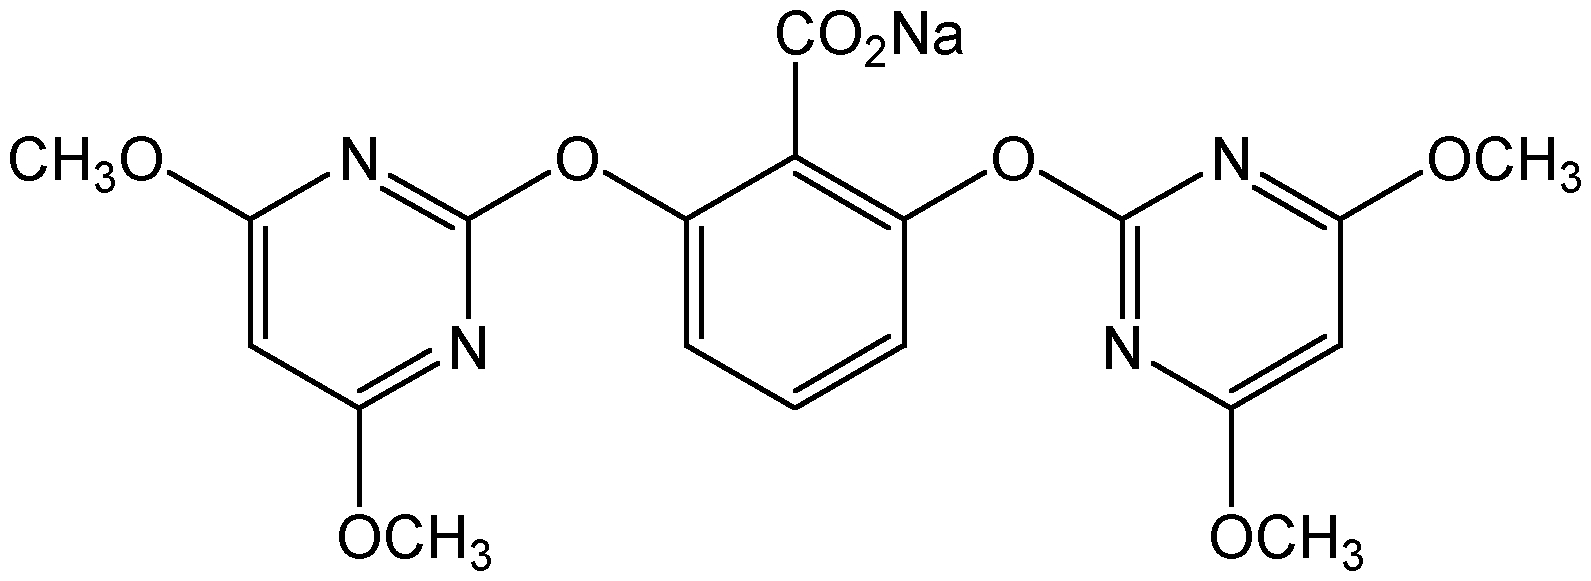 Chemical Structure for Bispyribac Sodium